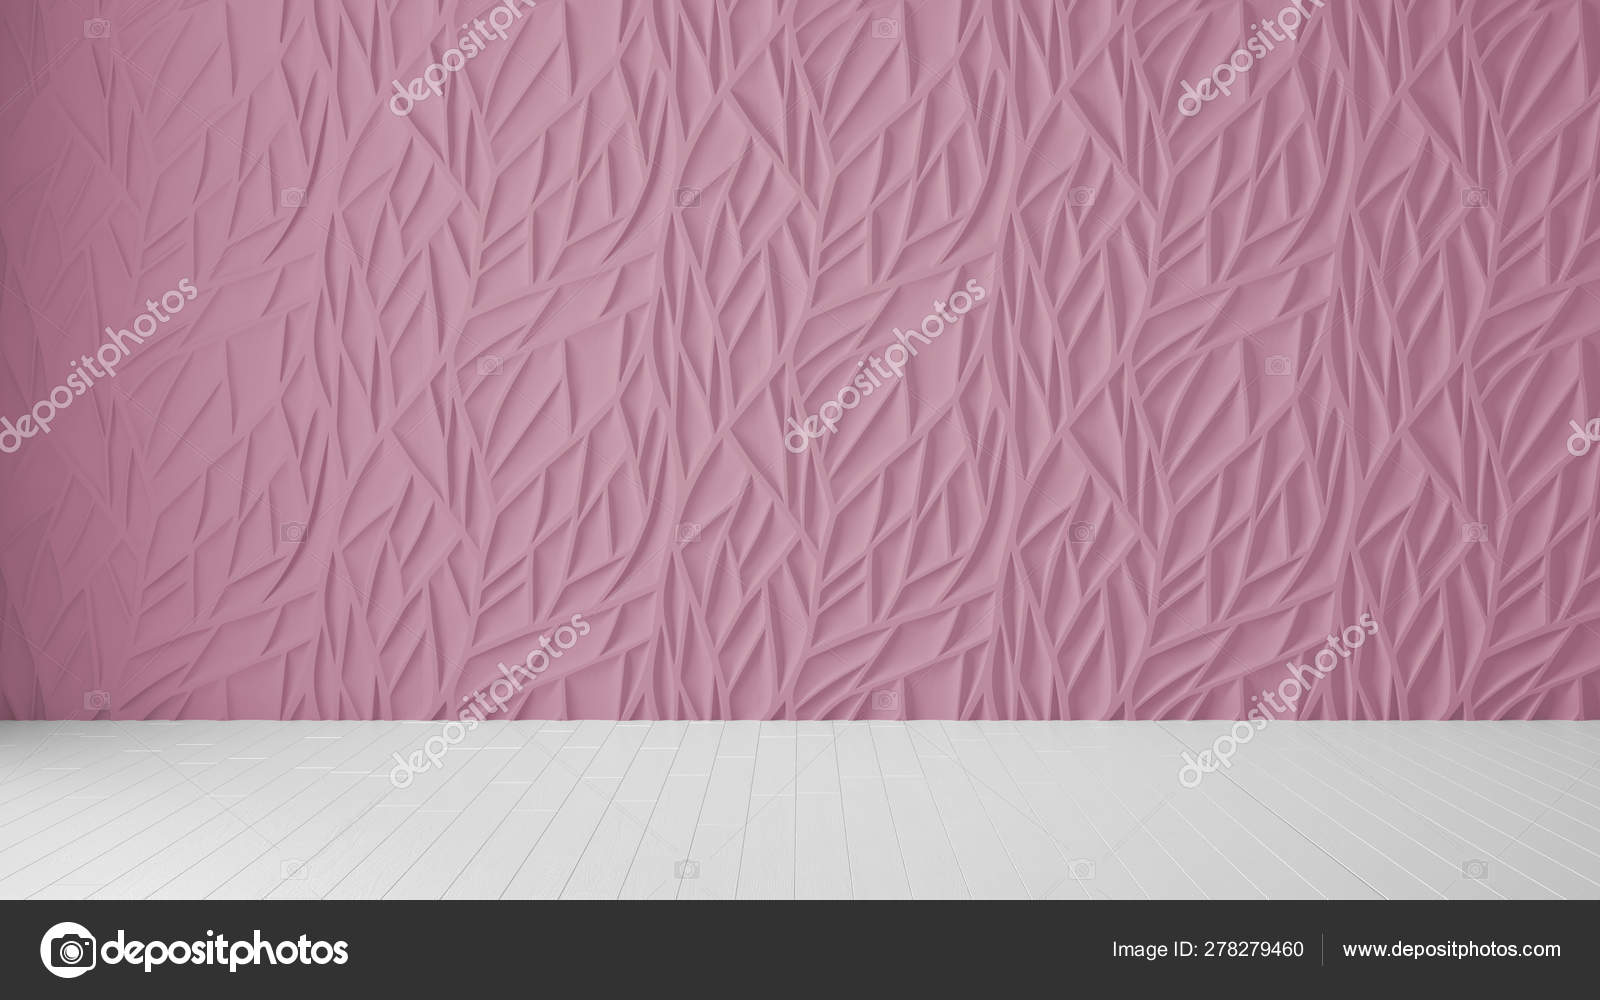 Empty room interior design, pink panel and wooden blank